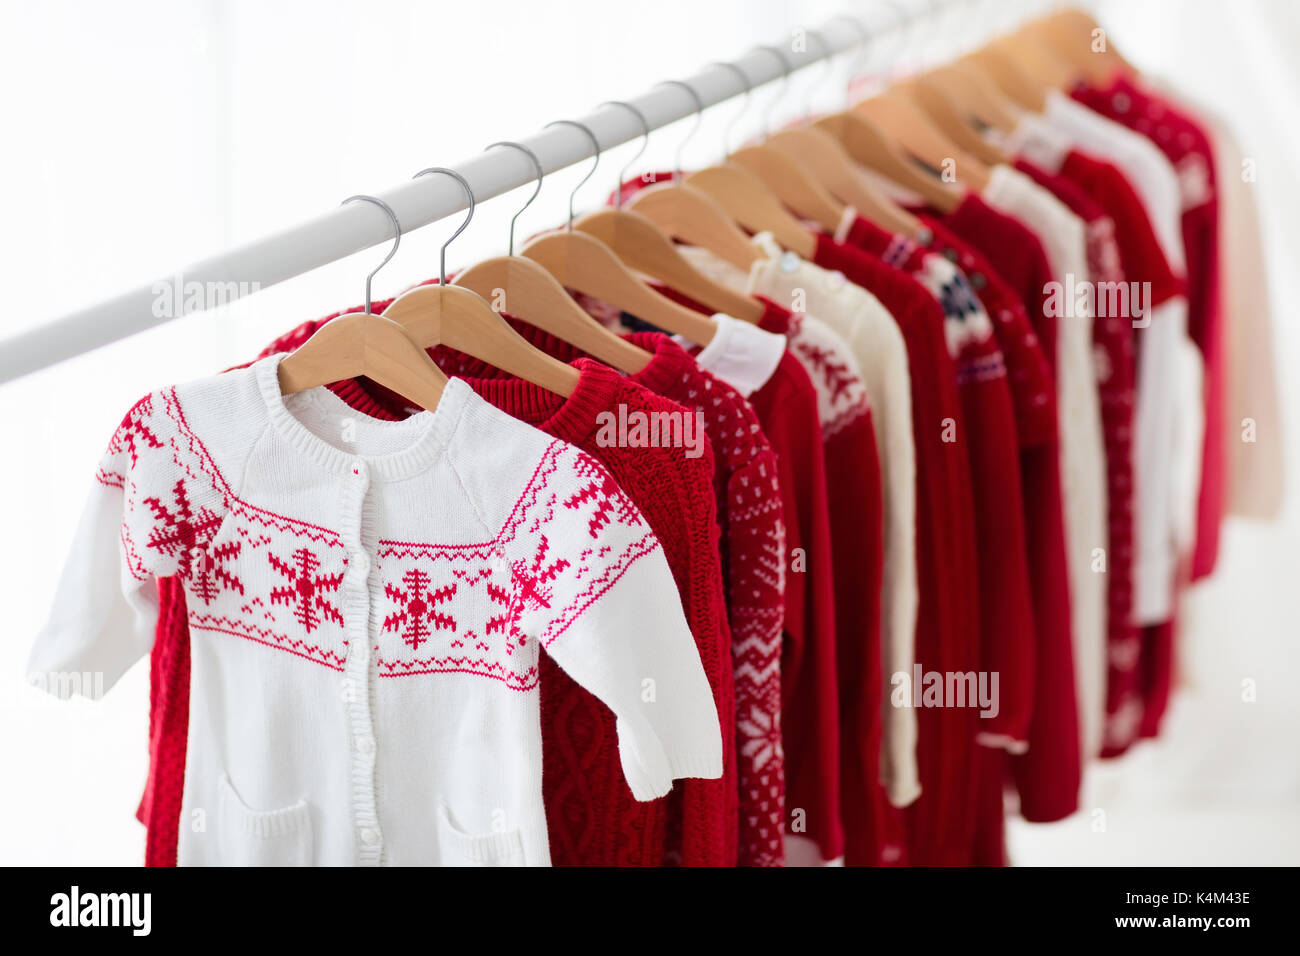 Clothes rack with red Christmas knit wear. Wardrobe with knitted ...